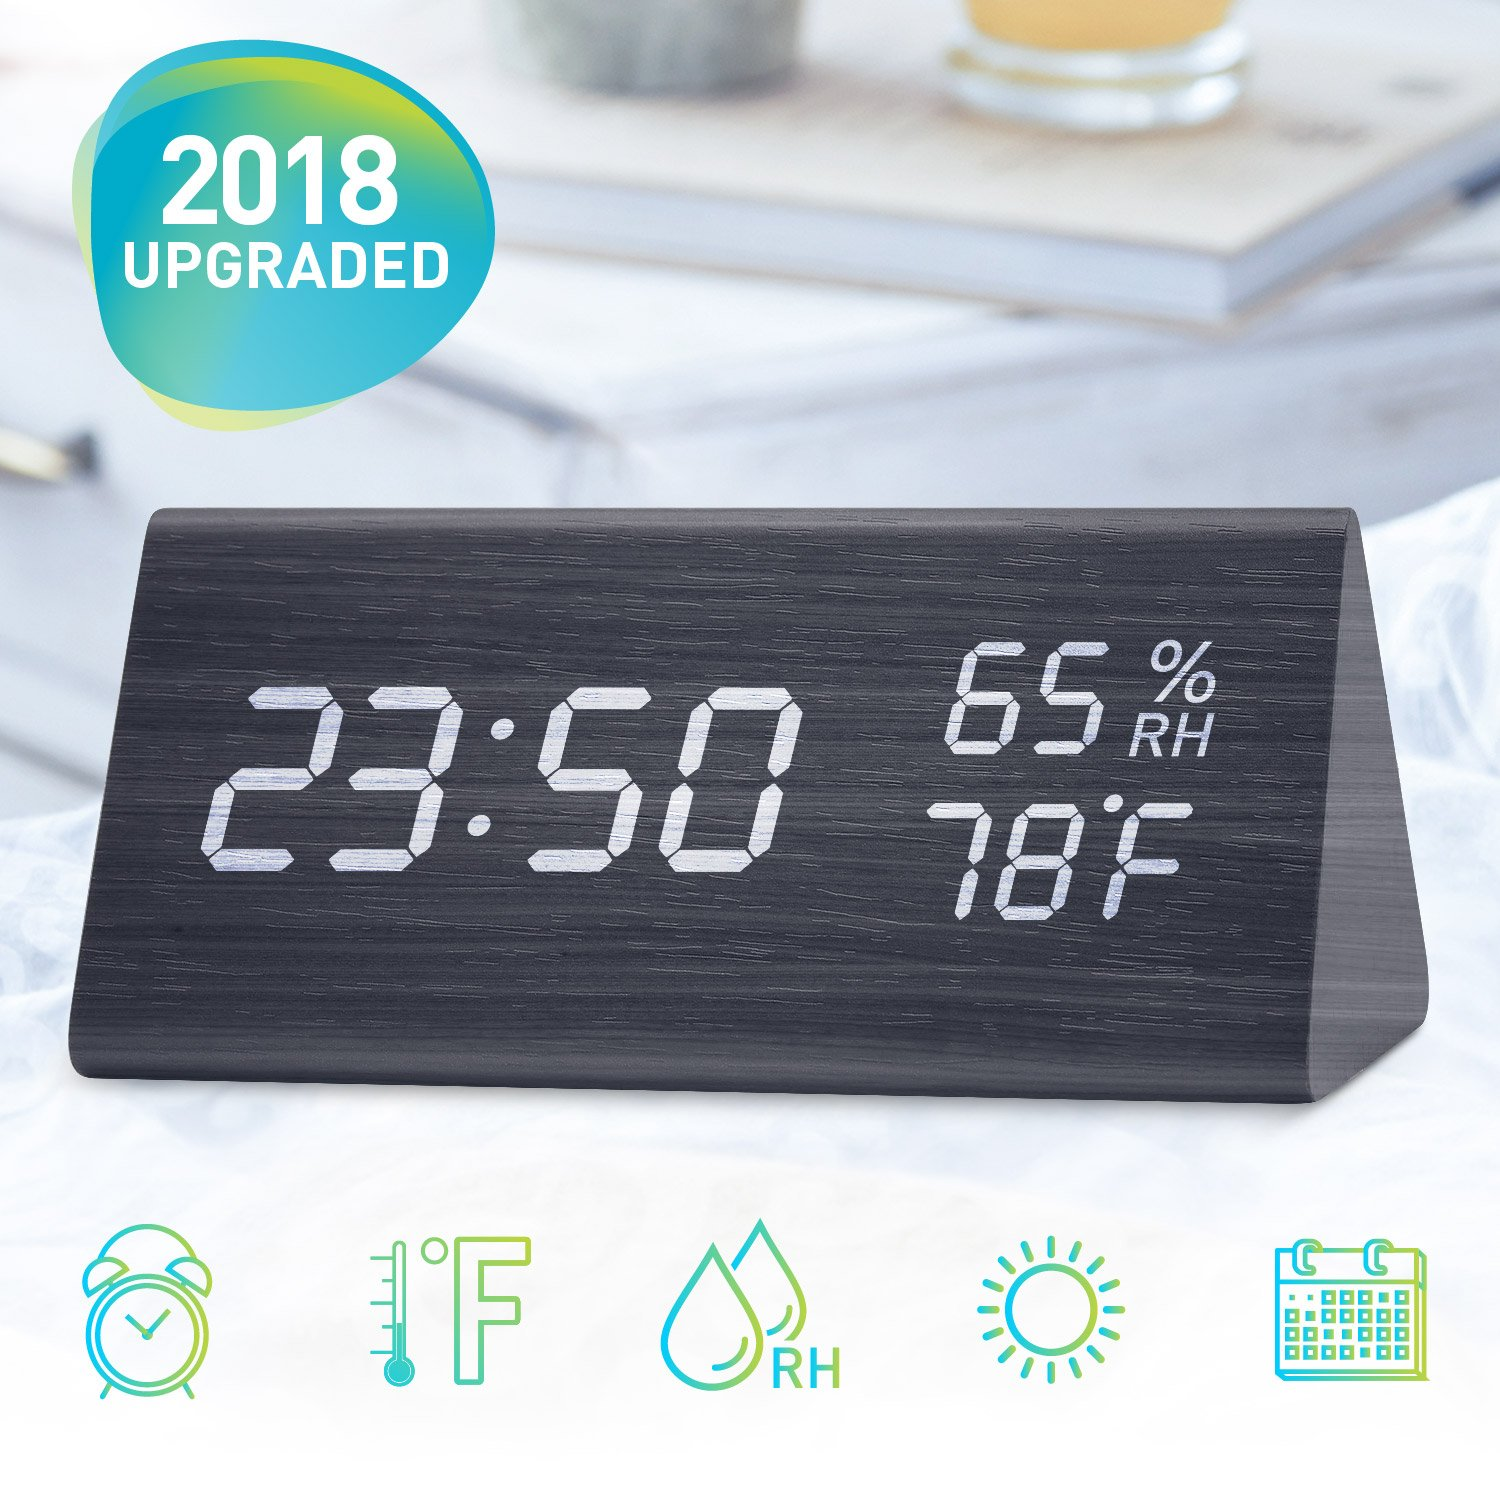 Wooden LED Digital Alarm Clock with Time, Temperature and Humidity Display, Digital Desk Clock for Bedroom with 3 Levels Brightness, 3 Alarm Settings and Sound Contral